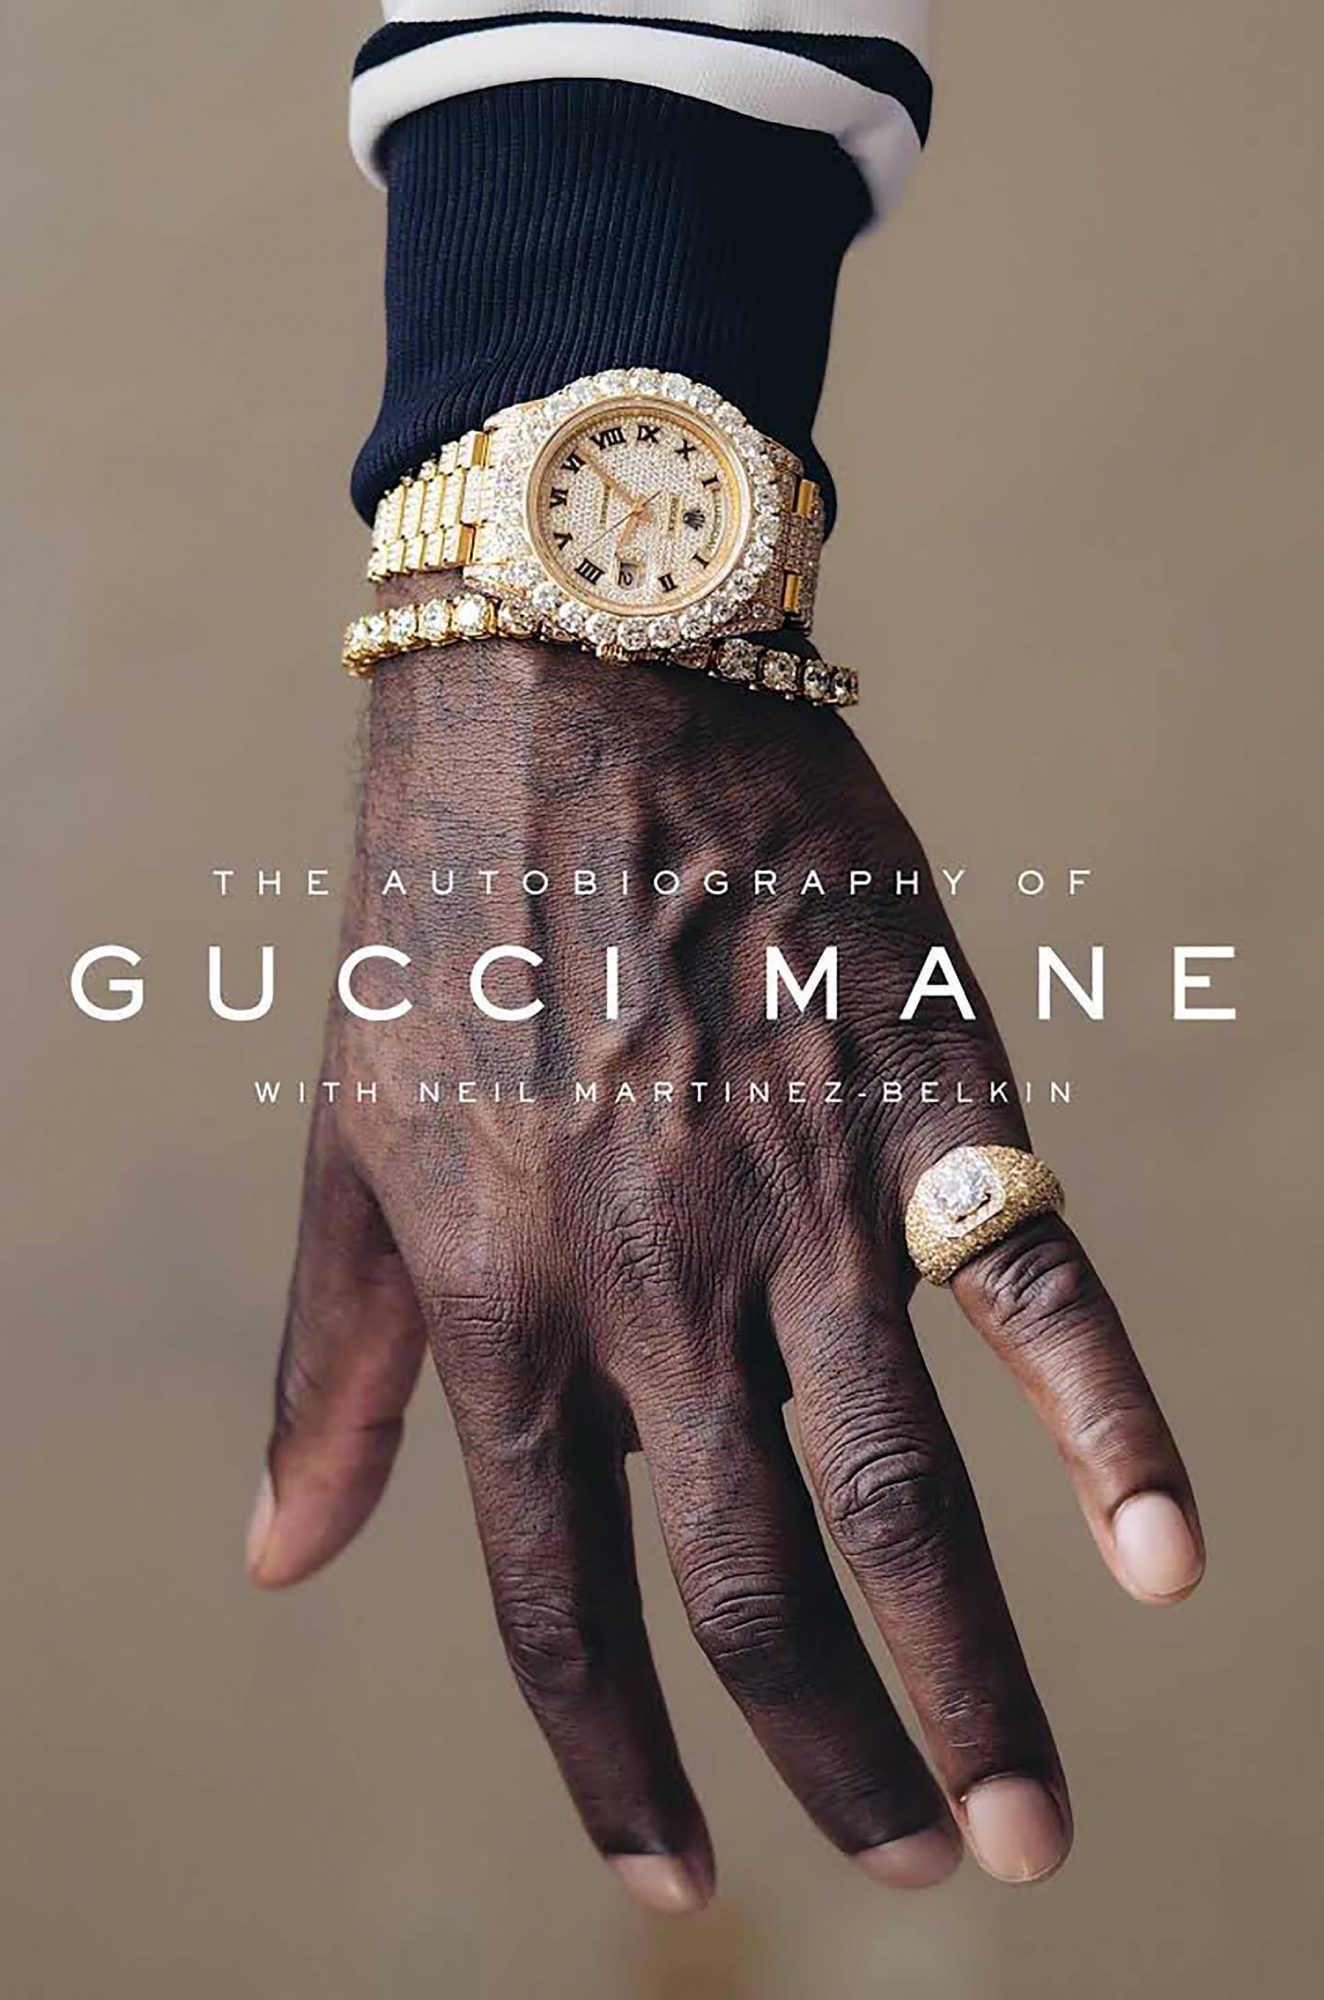 The Autobiography of Gucci Mane CR: Simon and Schuster